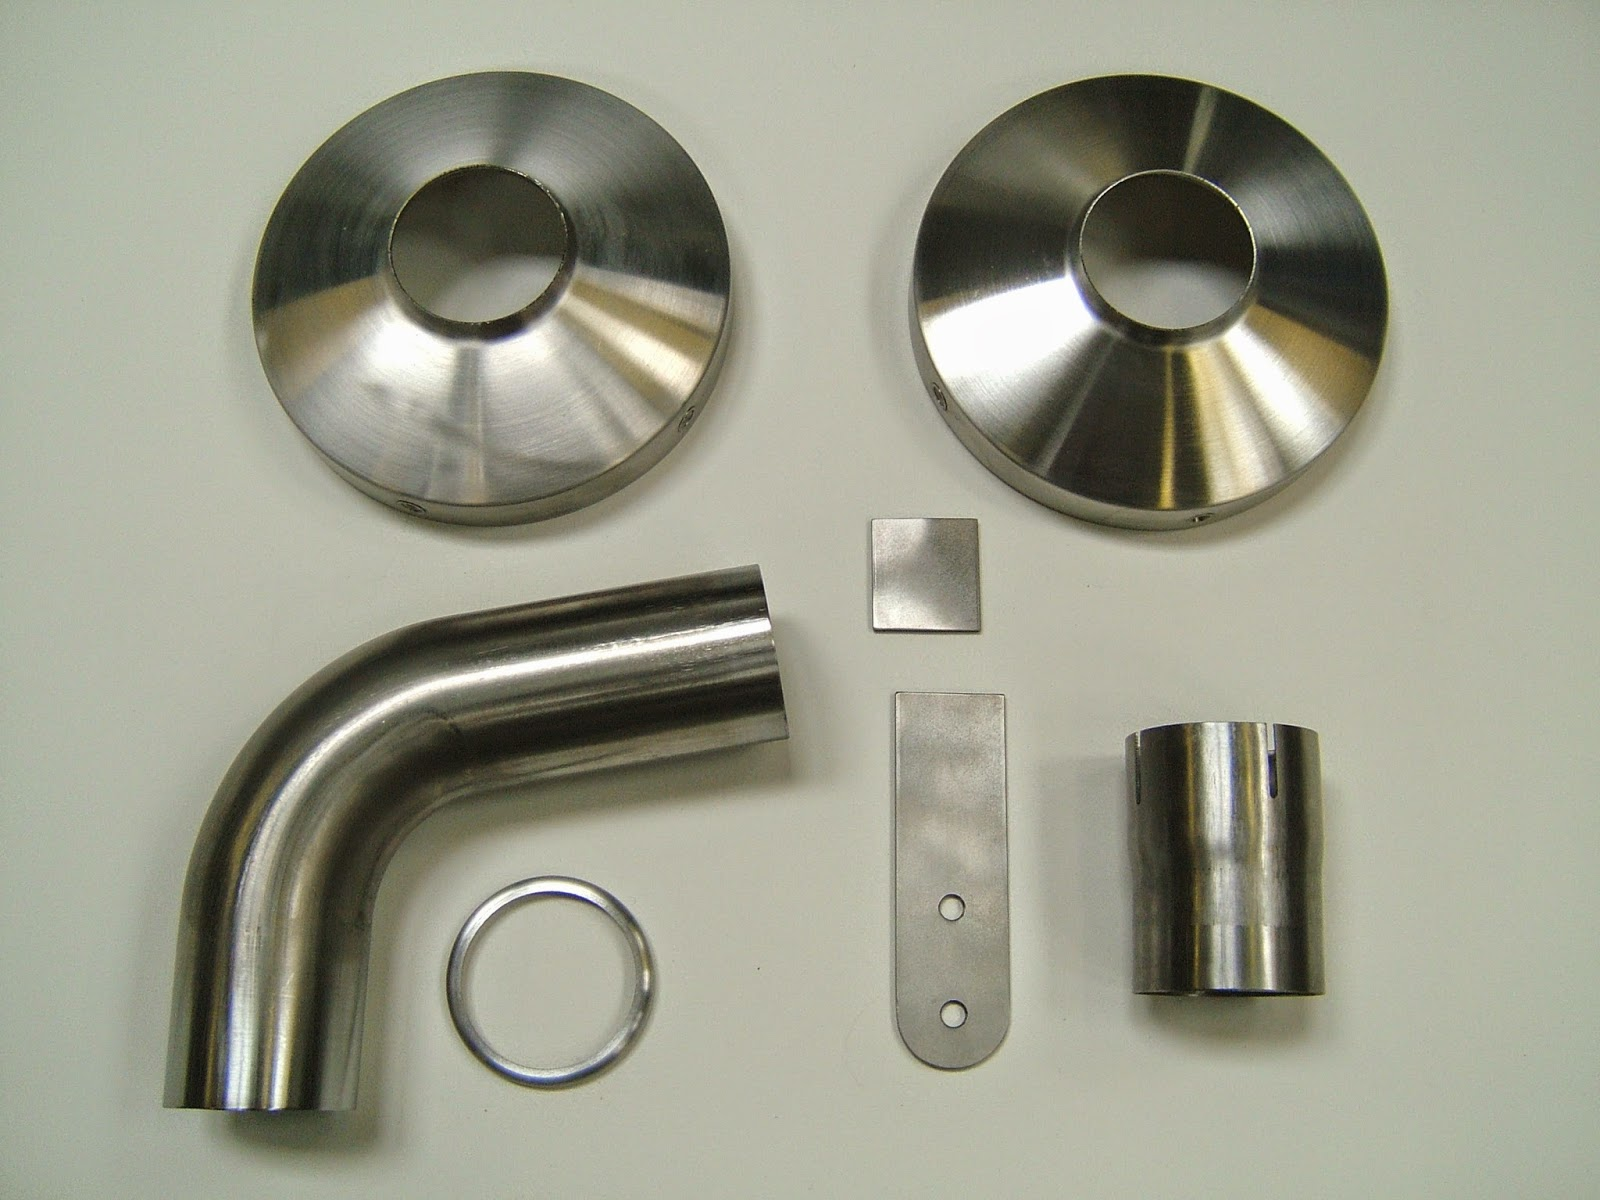 These are the component parts for the inlet and exhaust cap.